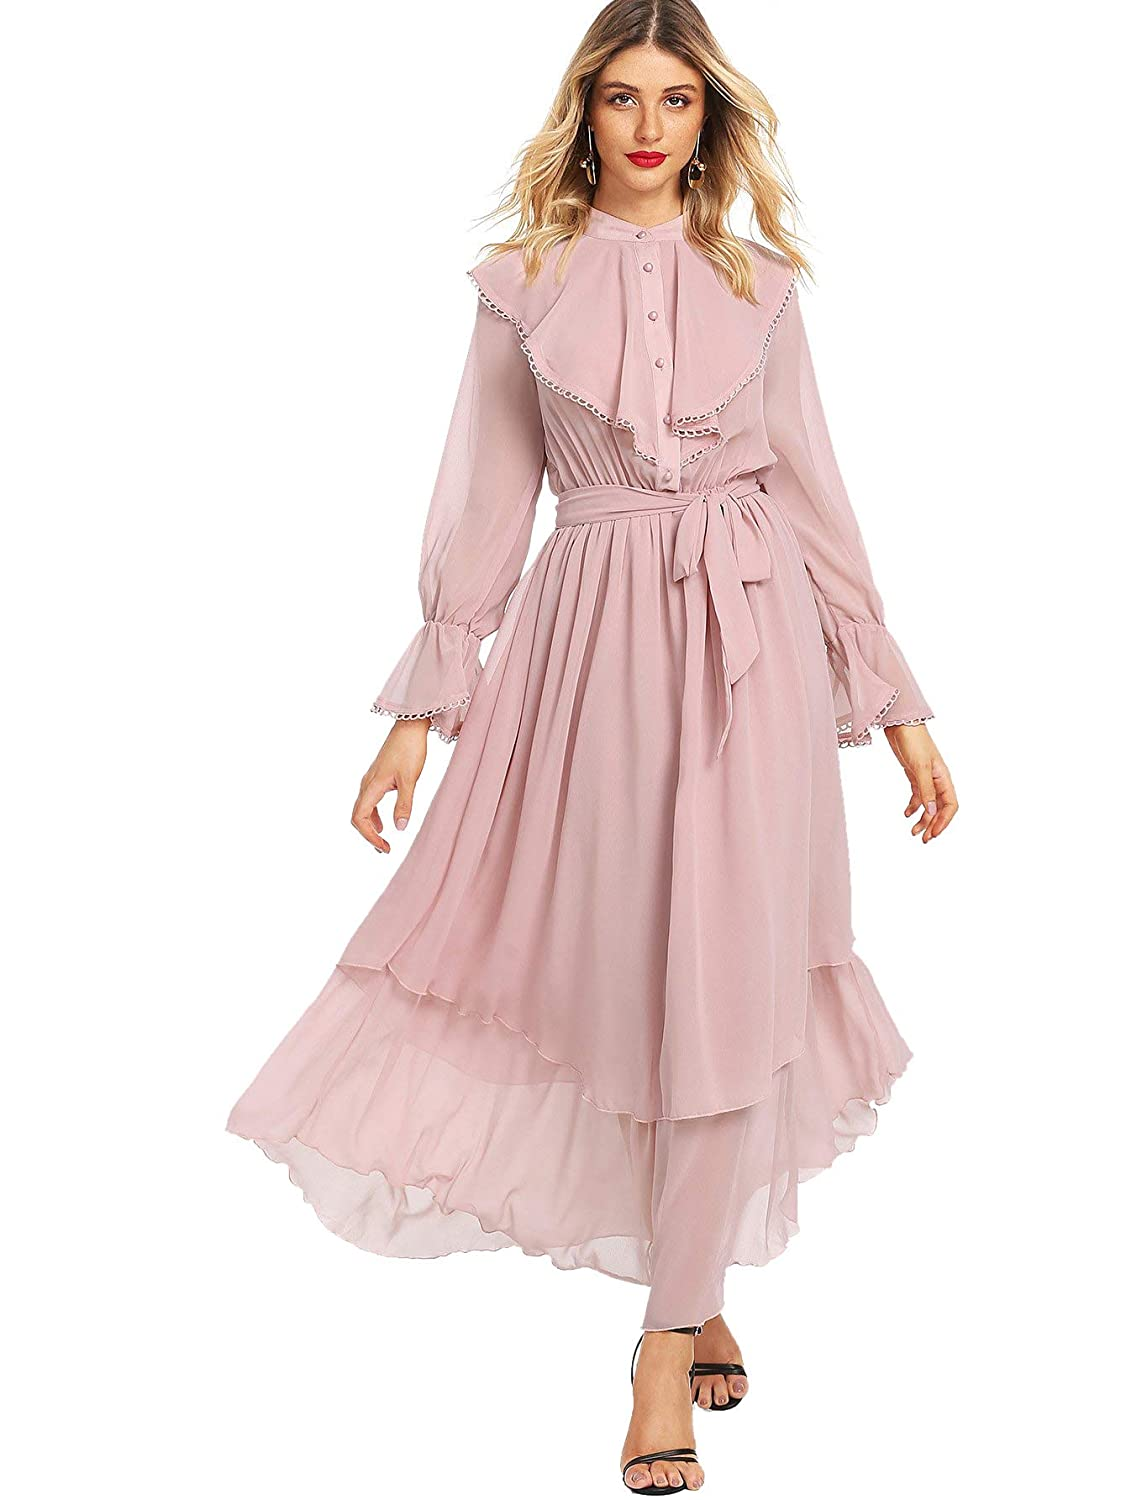 Edwardian Ladies Clothing – 1900, 1910s, Titanic Era Milumia Womens Contrast Lace Ruffle Detail Crochet Trim Belted Tiered Layer Flowy Maxi Dress $26.99 AT vintagedancer.com